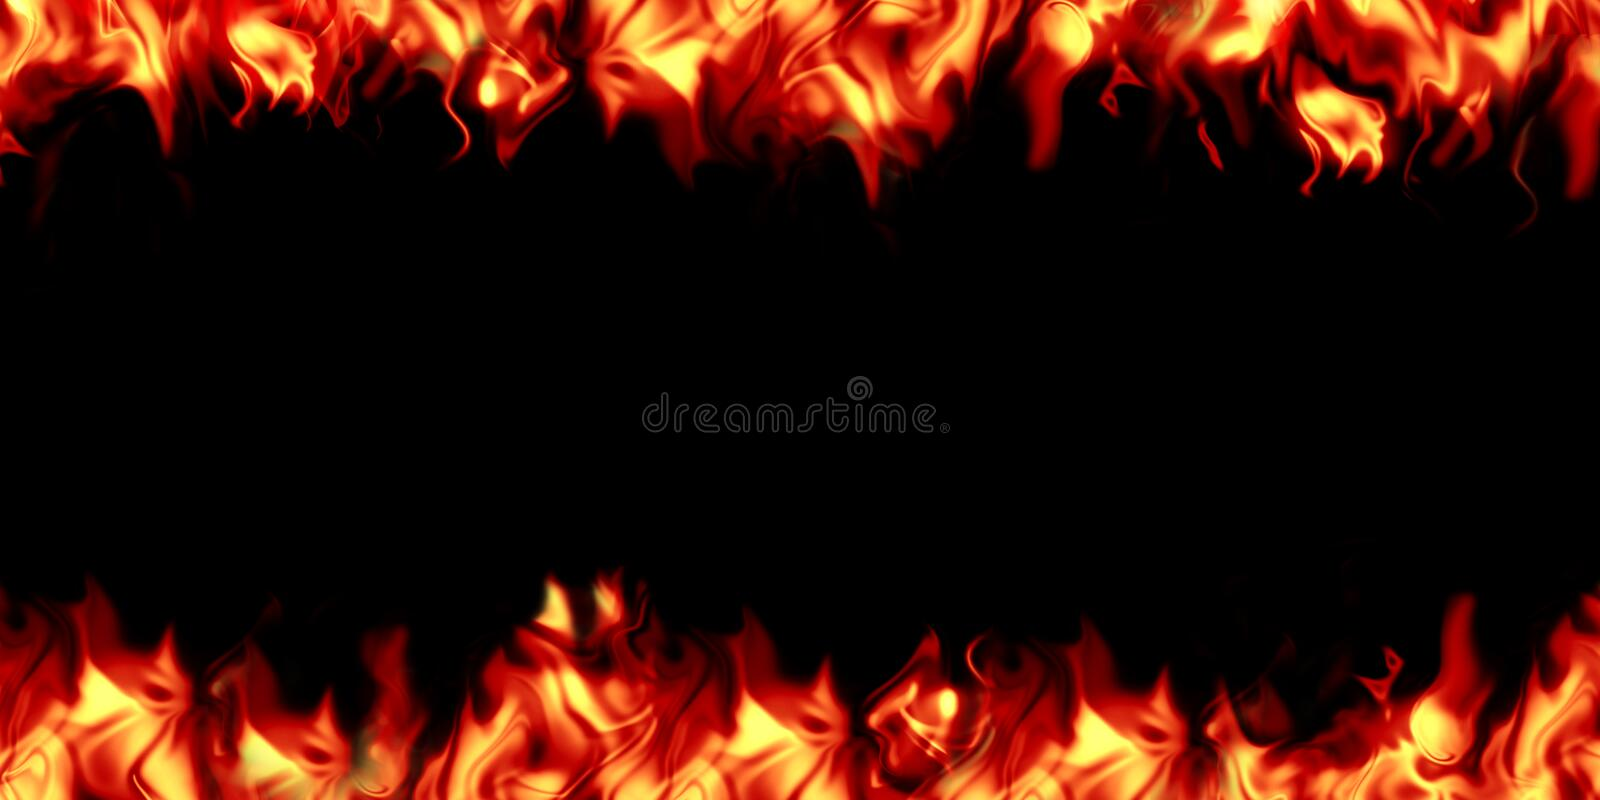 Bright, burning flame on a black background. royalty free stock photo